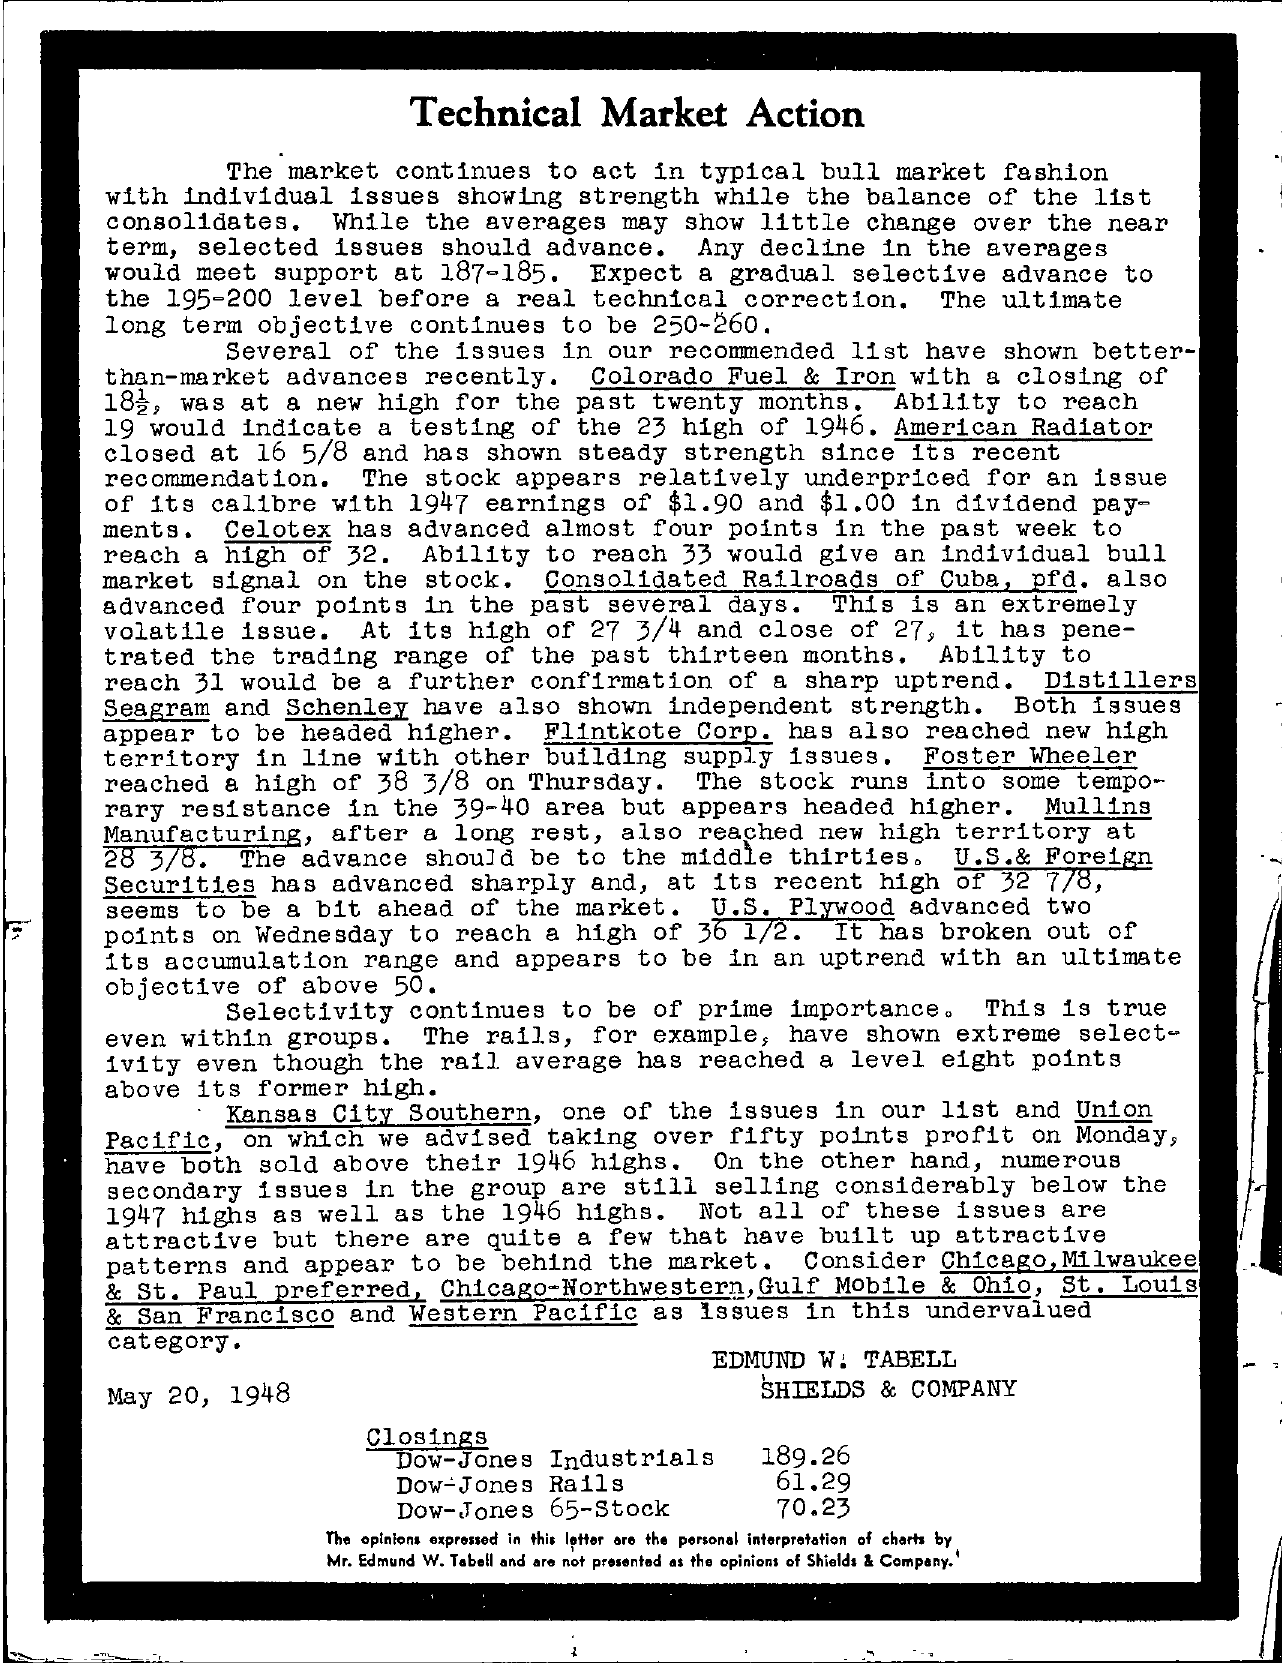 Tabell's Market Letter - May 20, 1948